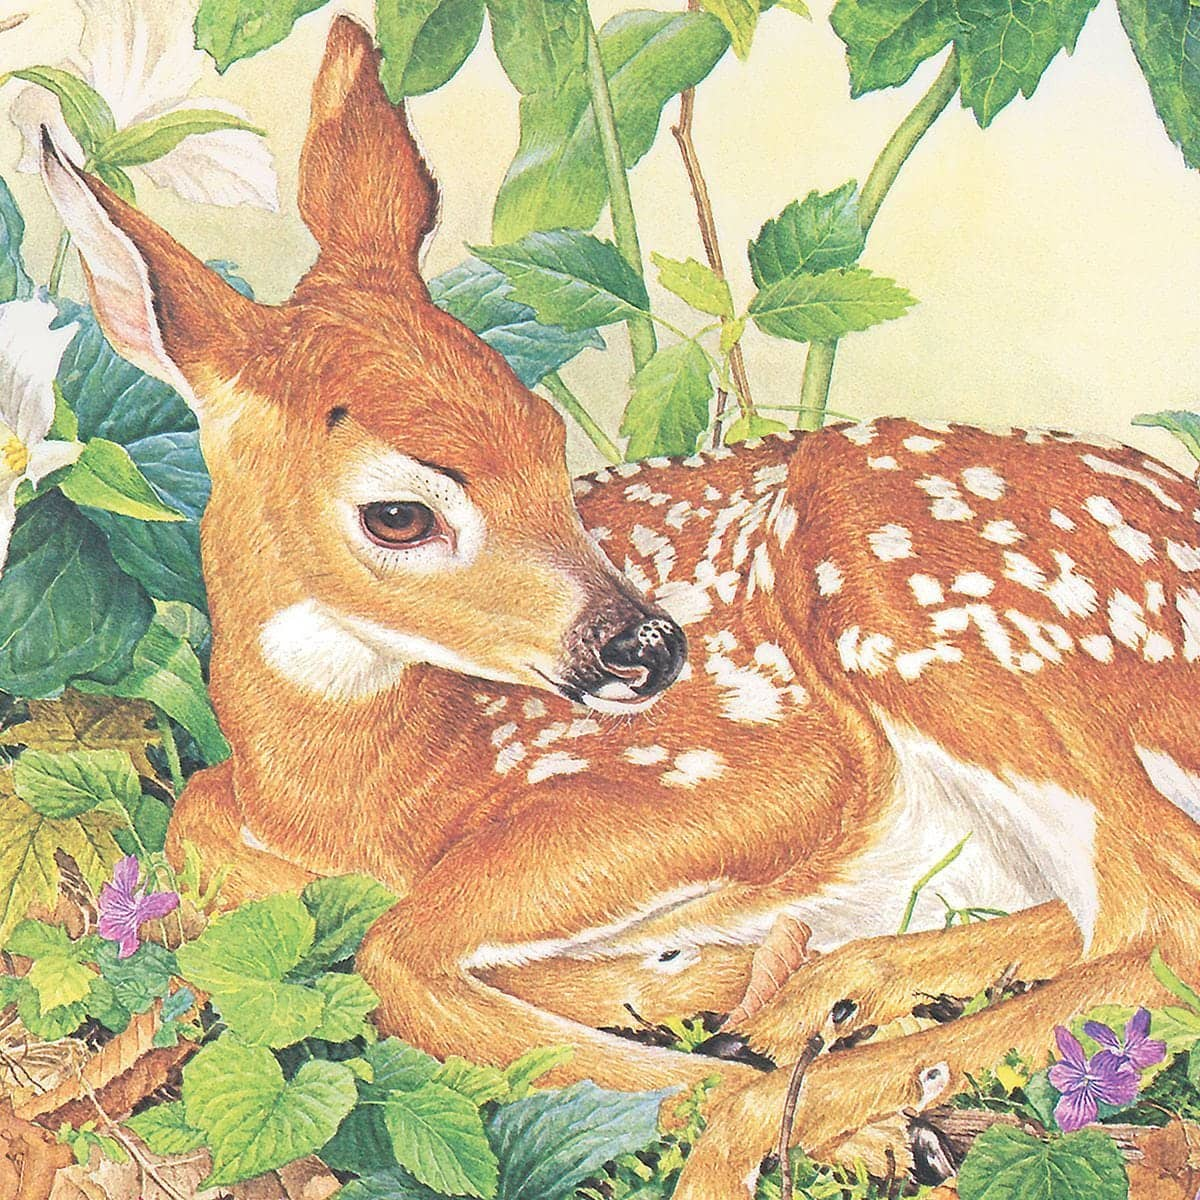 Fawn - Art Print by Glen Loates from the Glen Loates Store